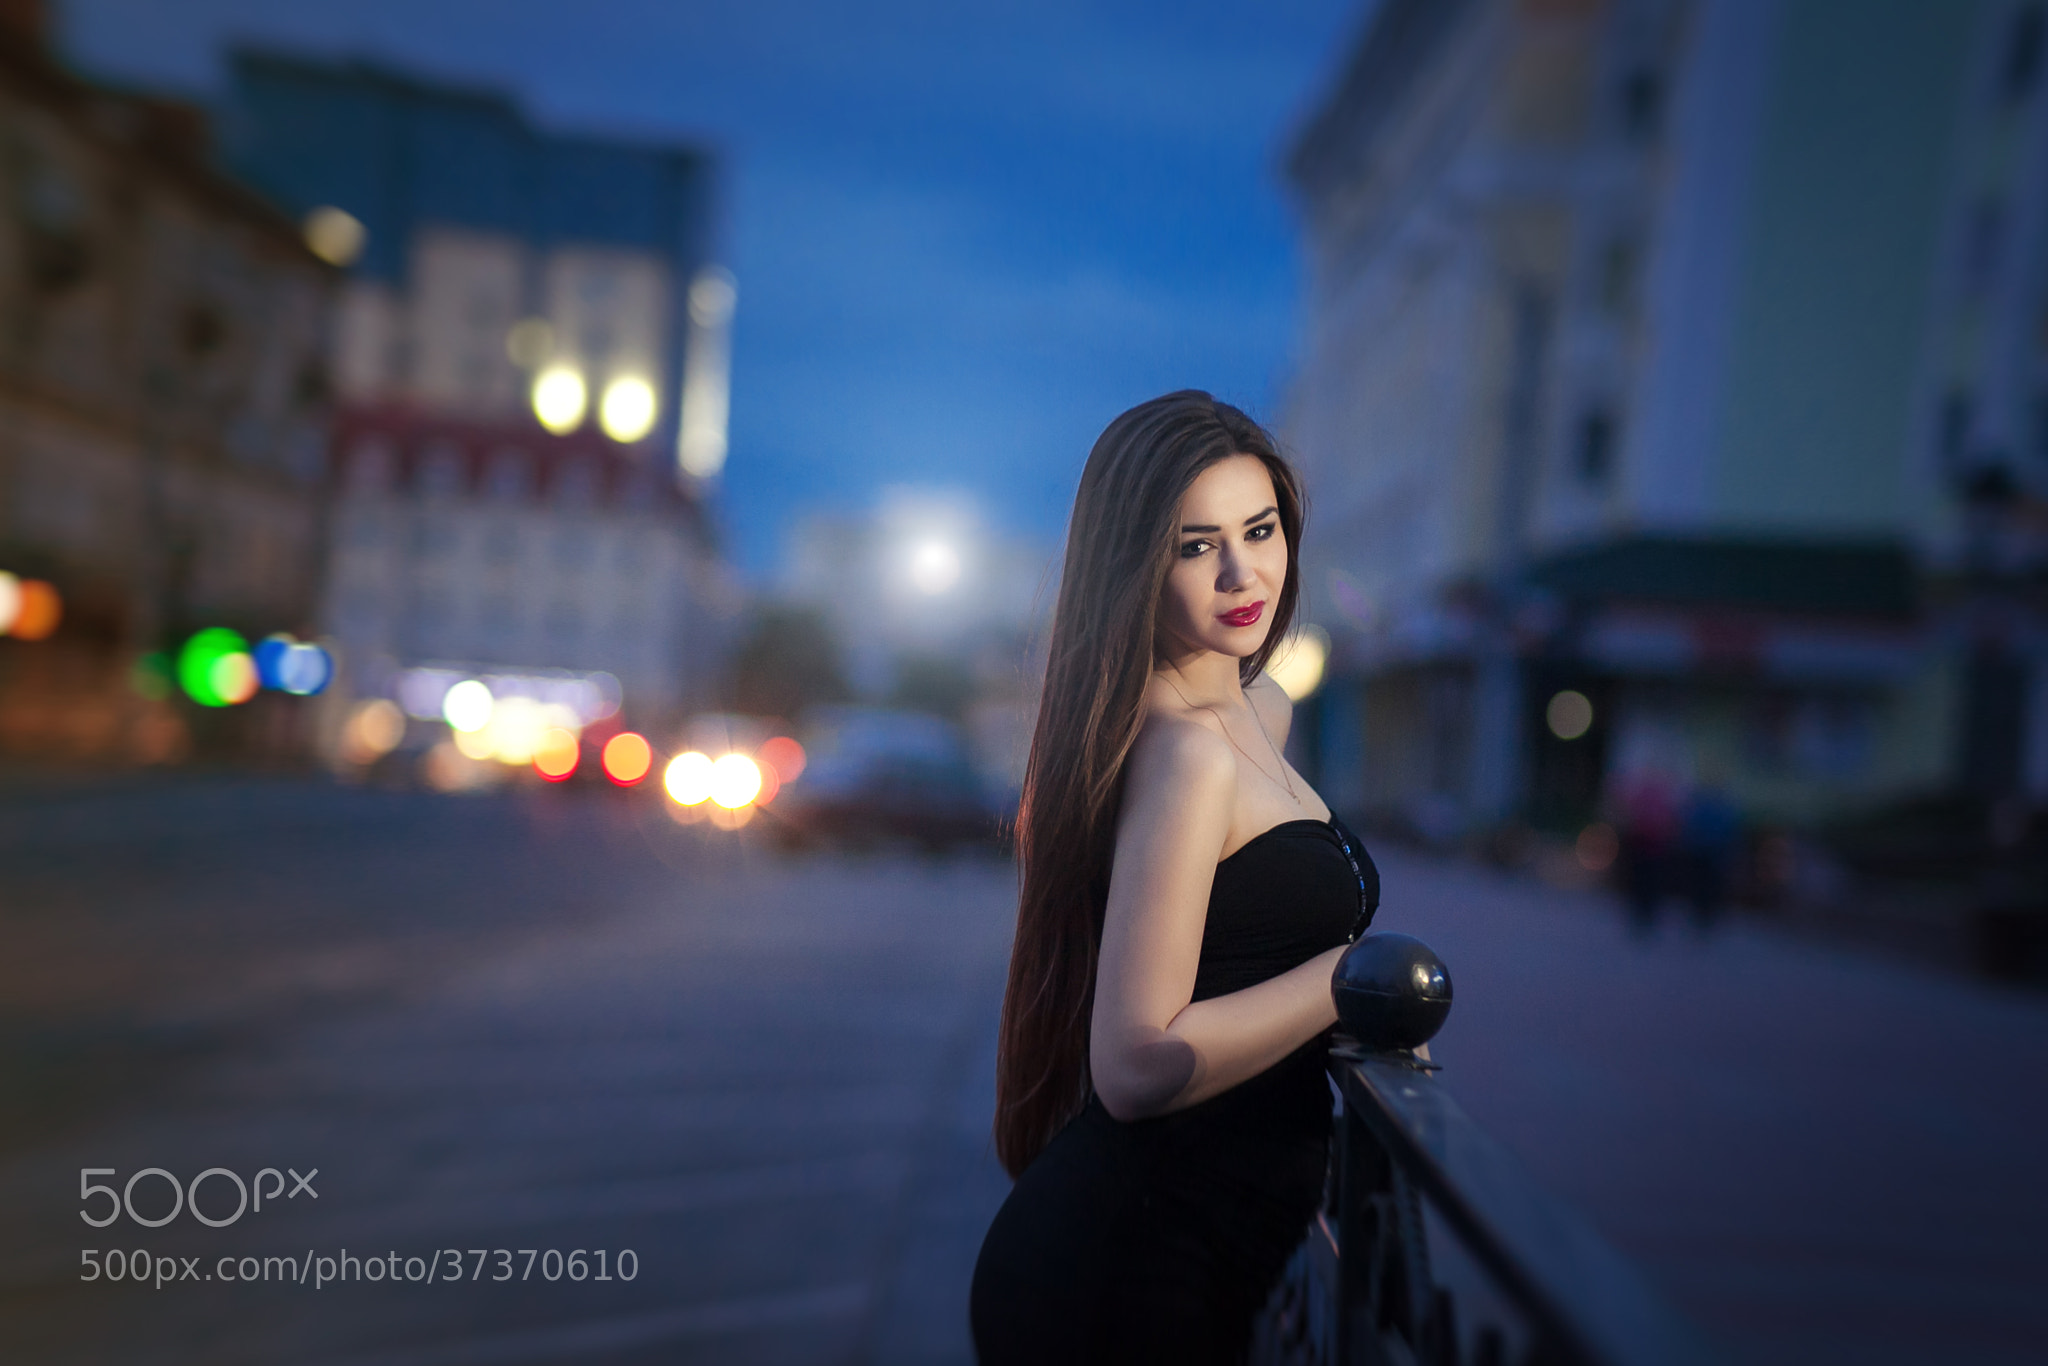 Photograph Sofia by Andrey Kucheruk on 500px